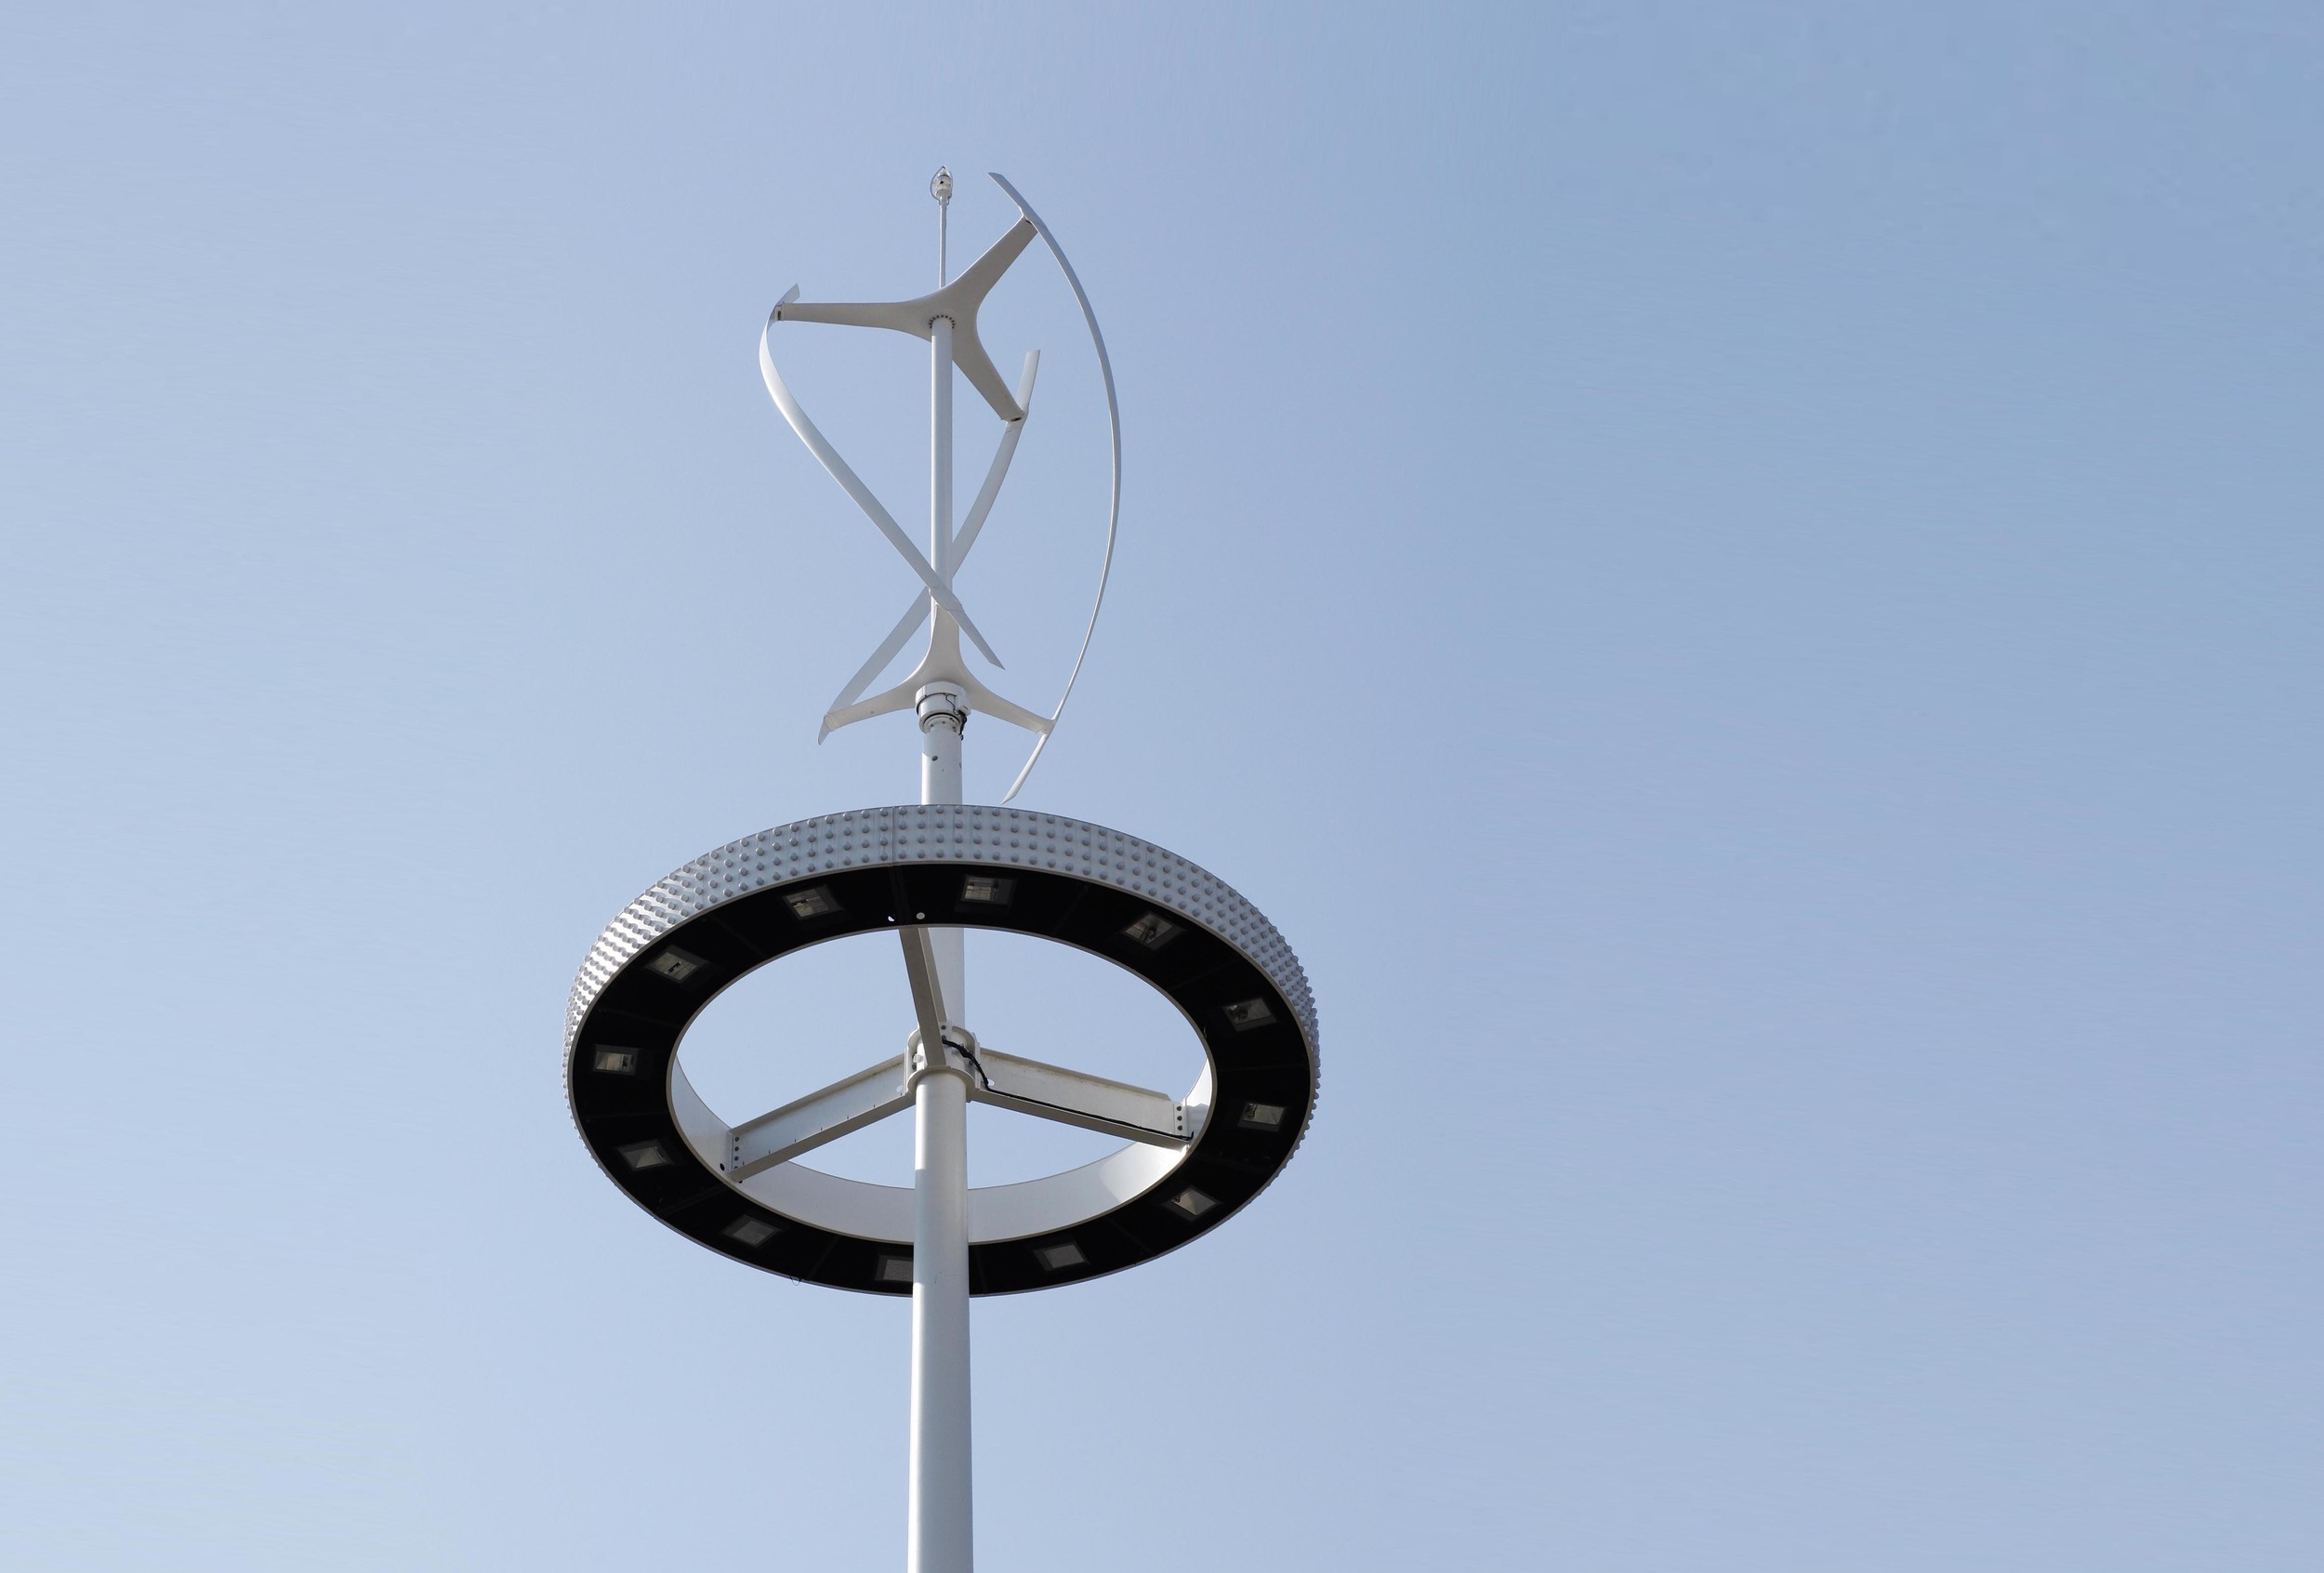 The Memory Masts are designed to keep the memory of the London Olympics alive for years to come.